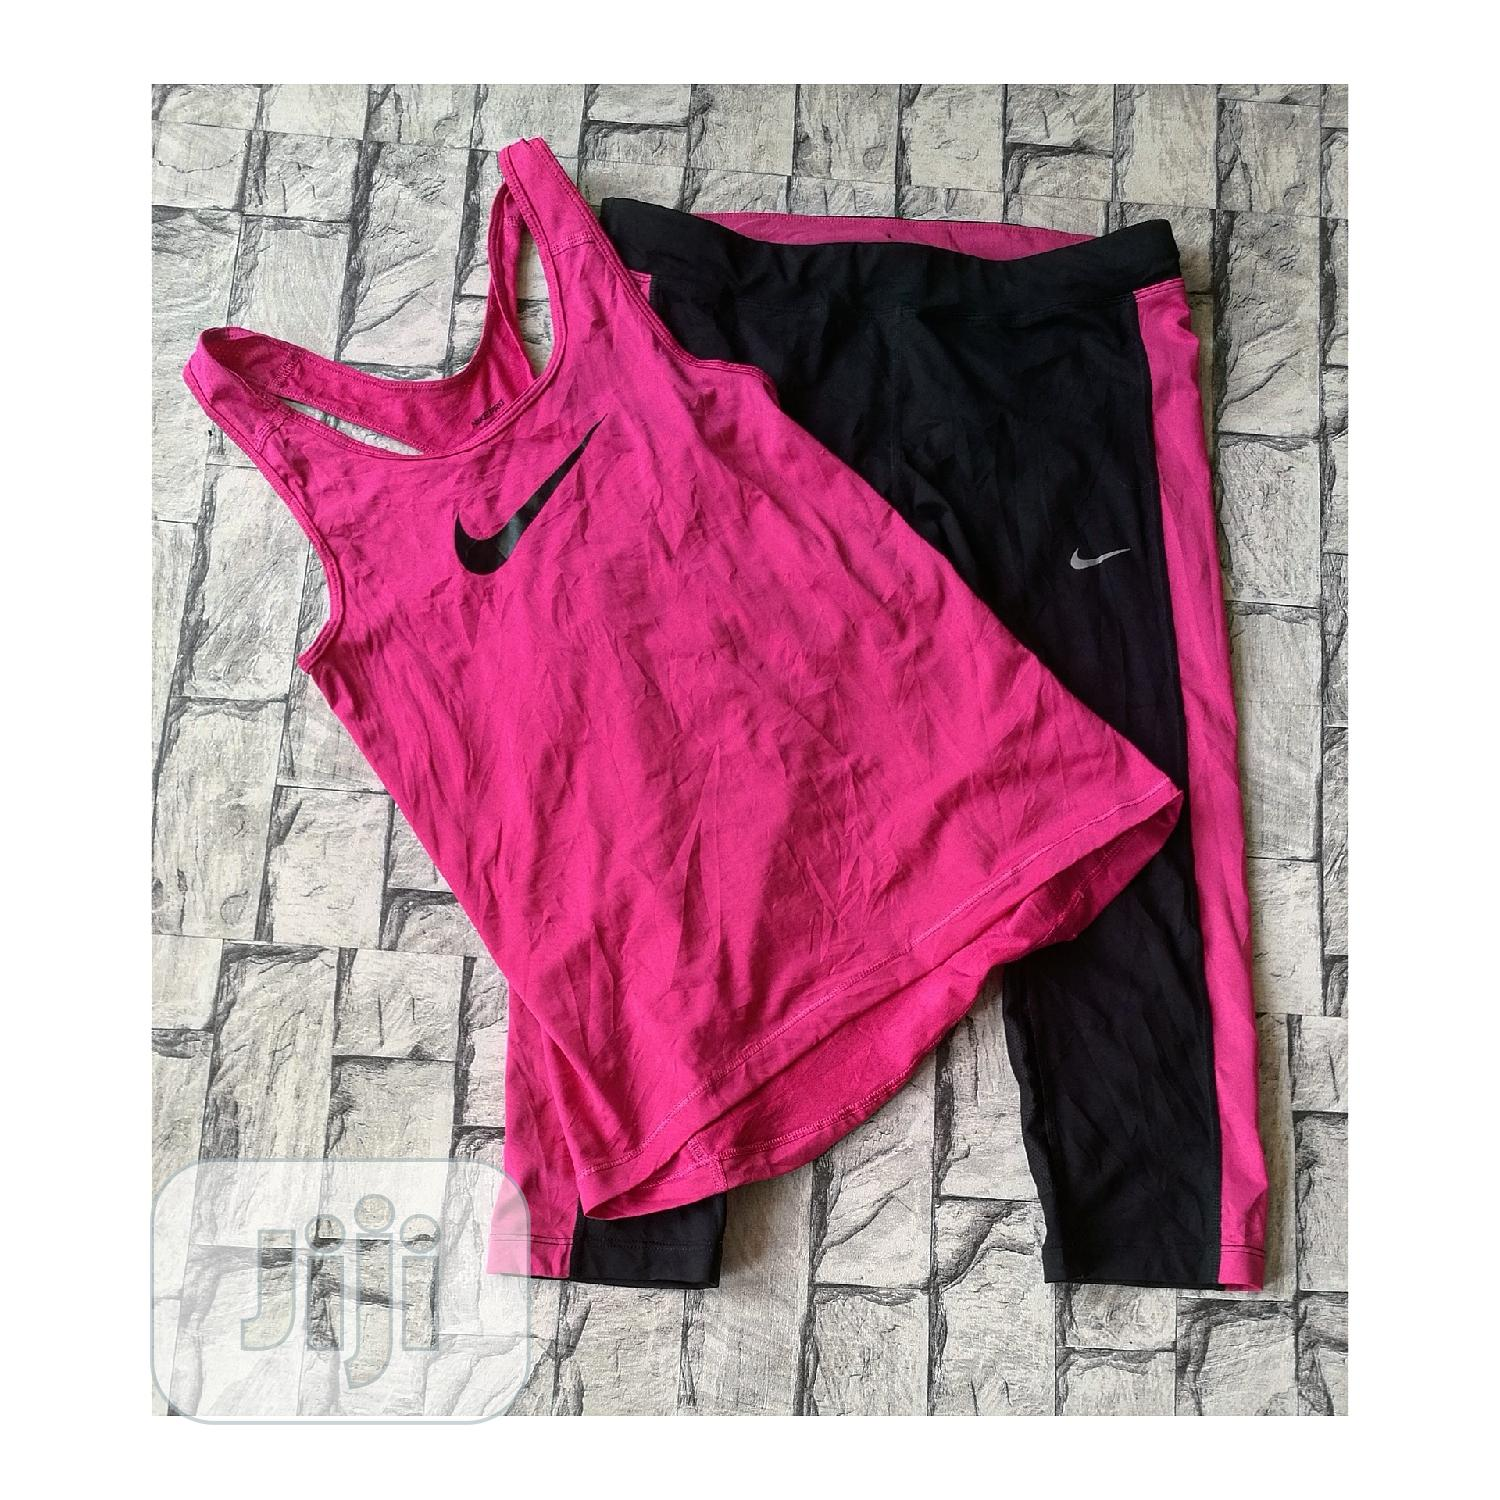 Olivia Charles Fit Gym Wear and Accessories | Clothing for sale in Amuwo-Odofin, Lagos State, Nigeria